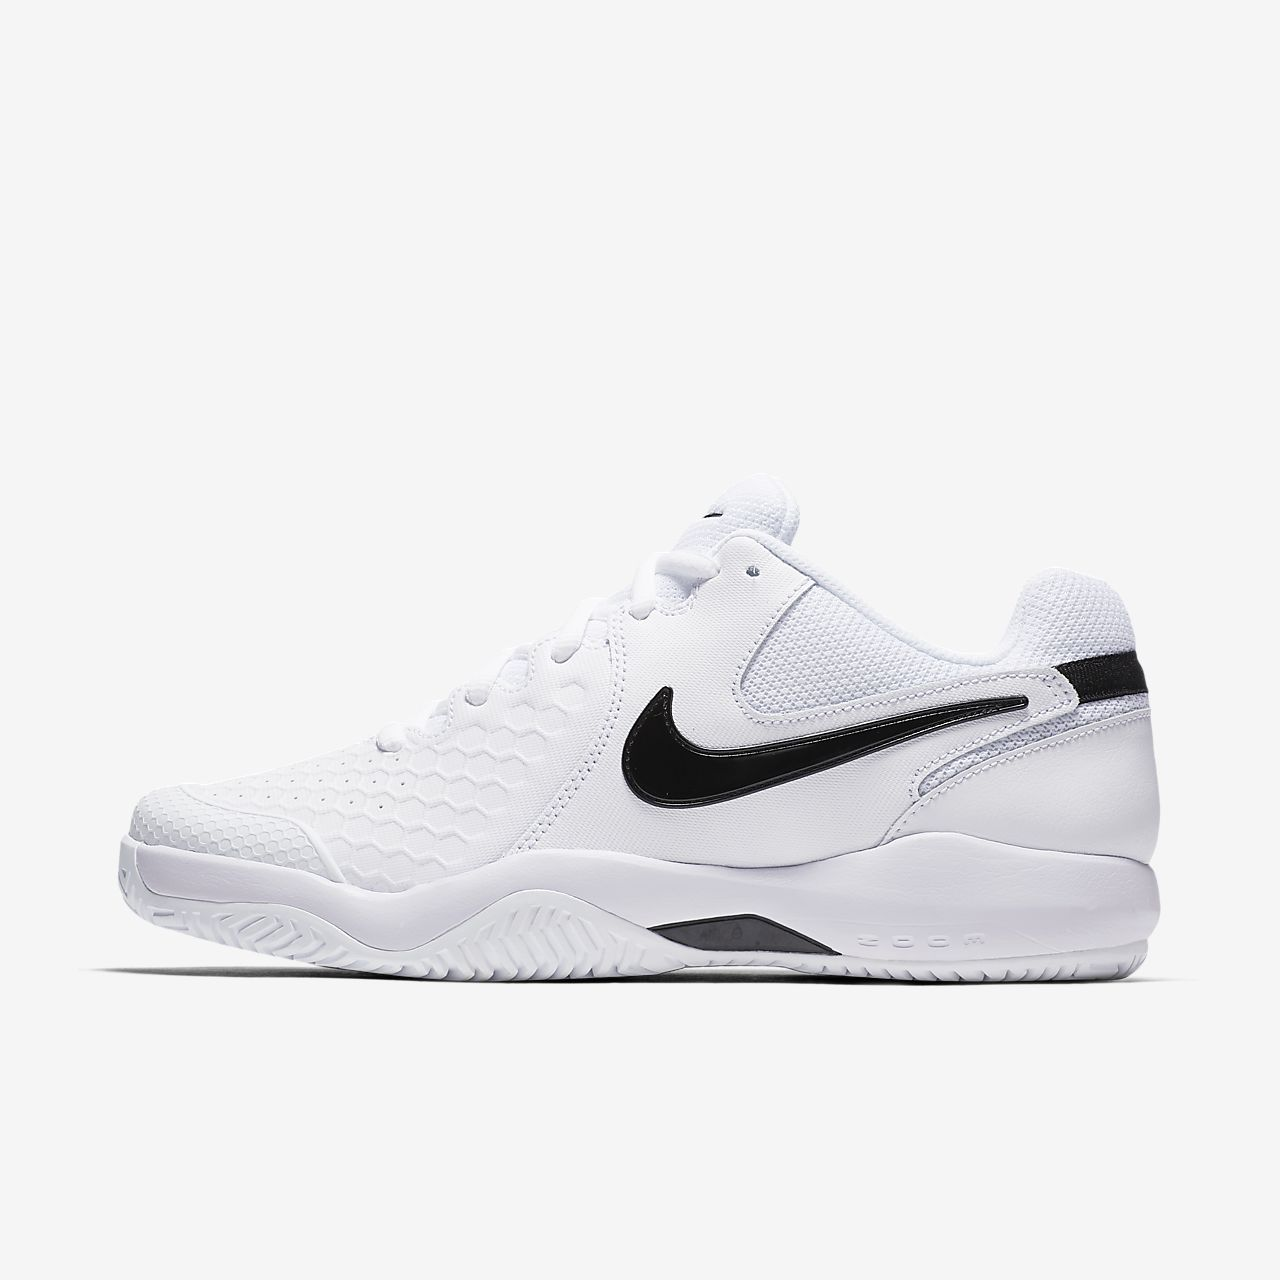 best service 9c8e4 8a6c9 ... NikeCourt Air Zoom Resistance tennissko til hard court til herre